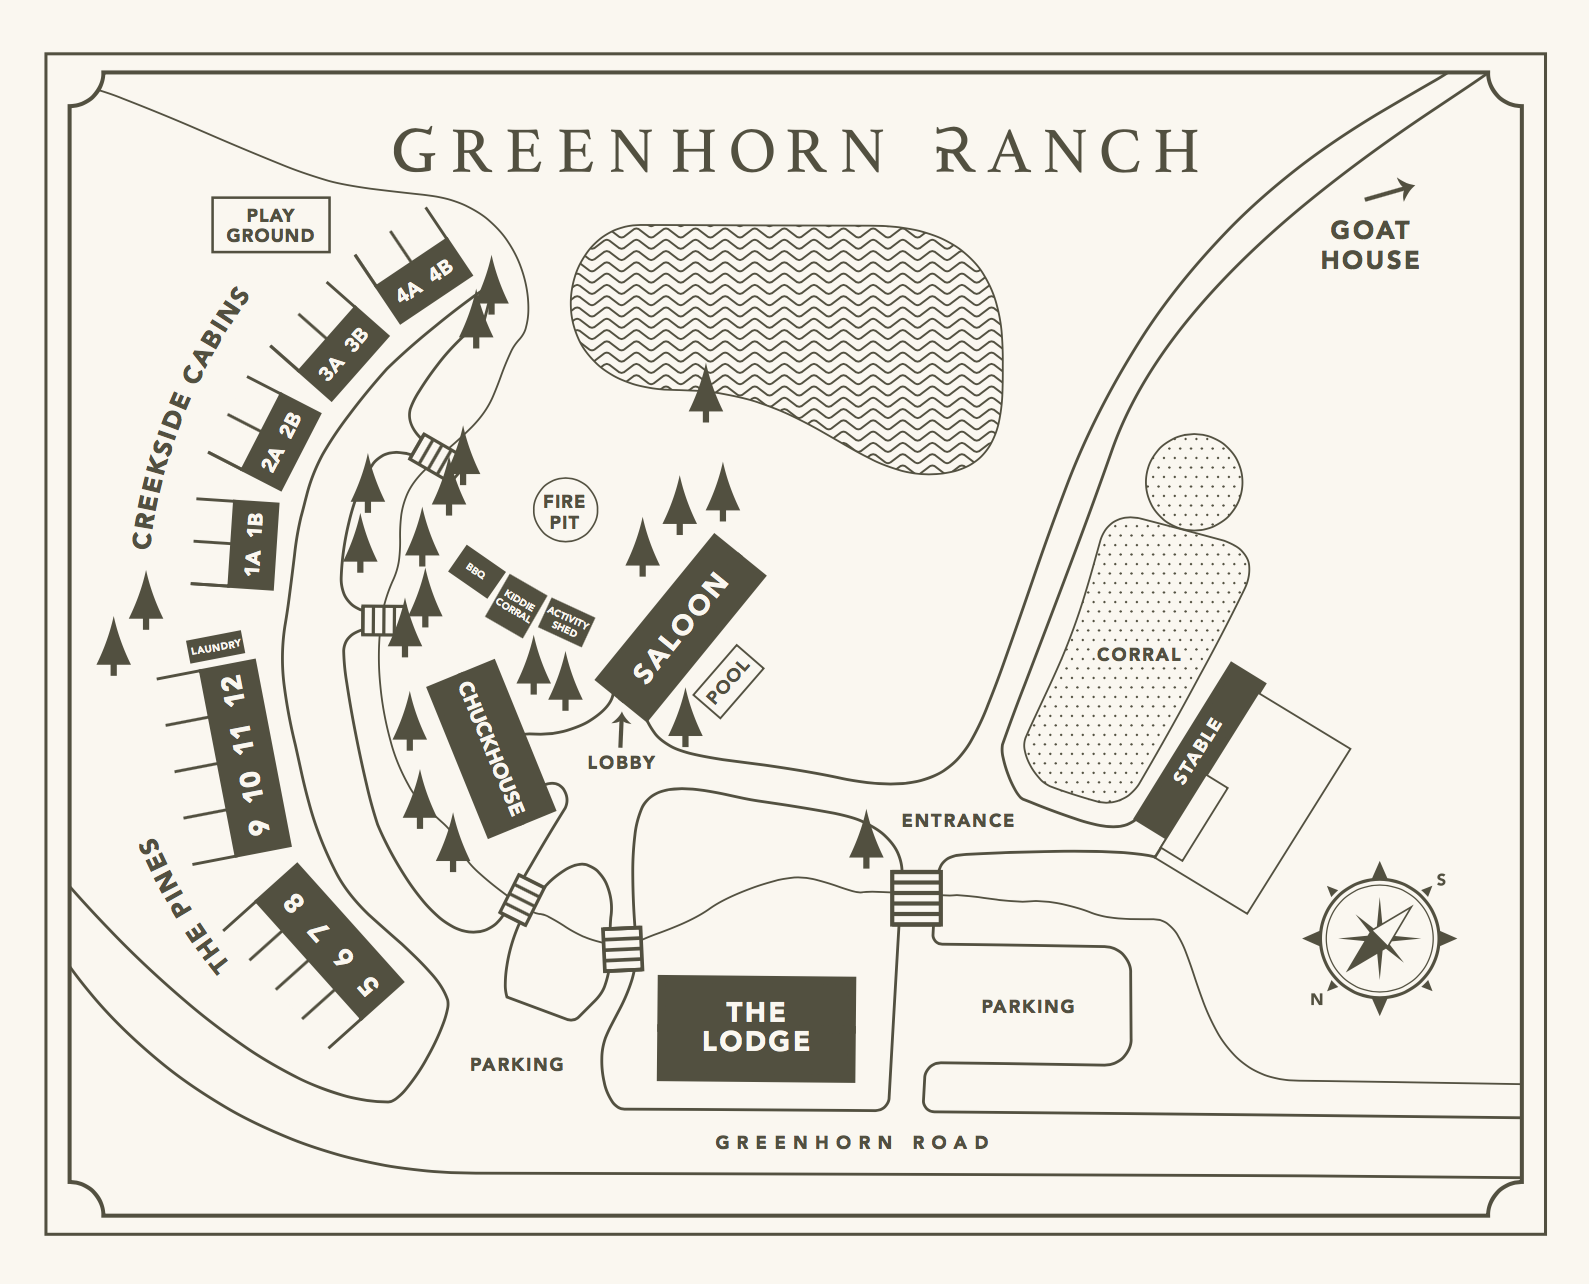 Map of Greenhorn Ranch property